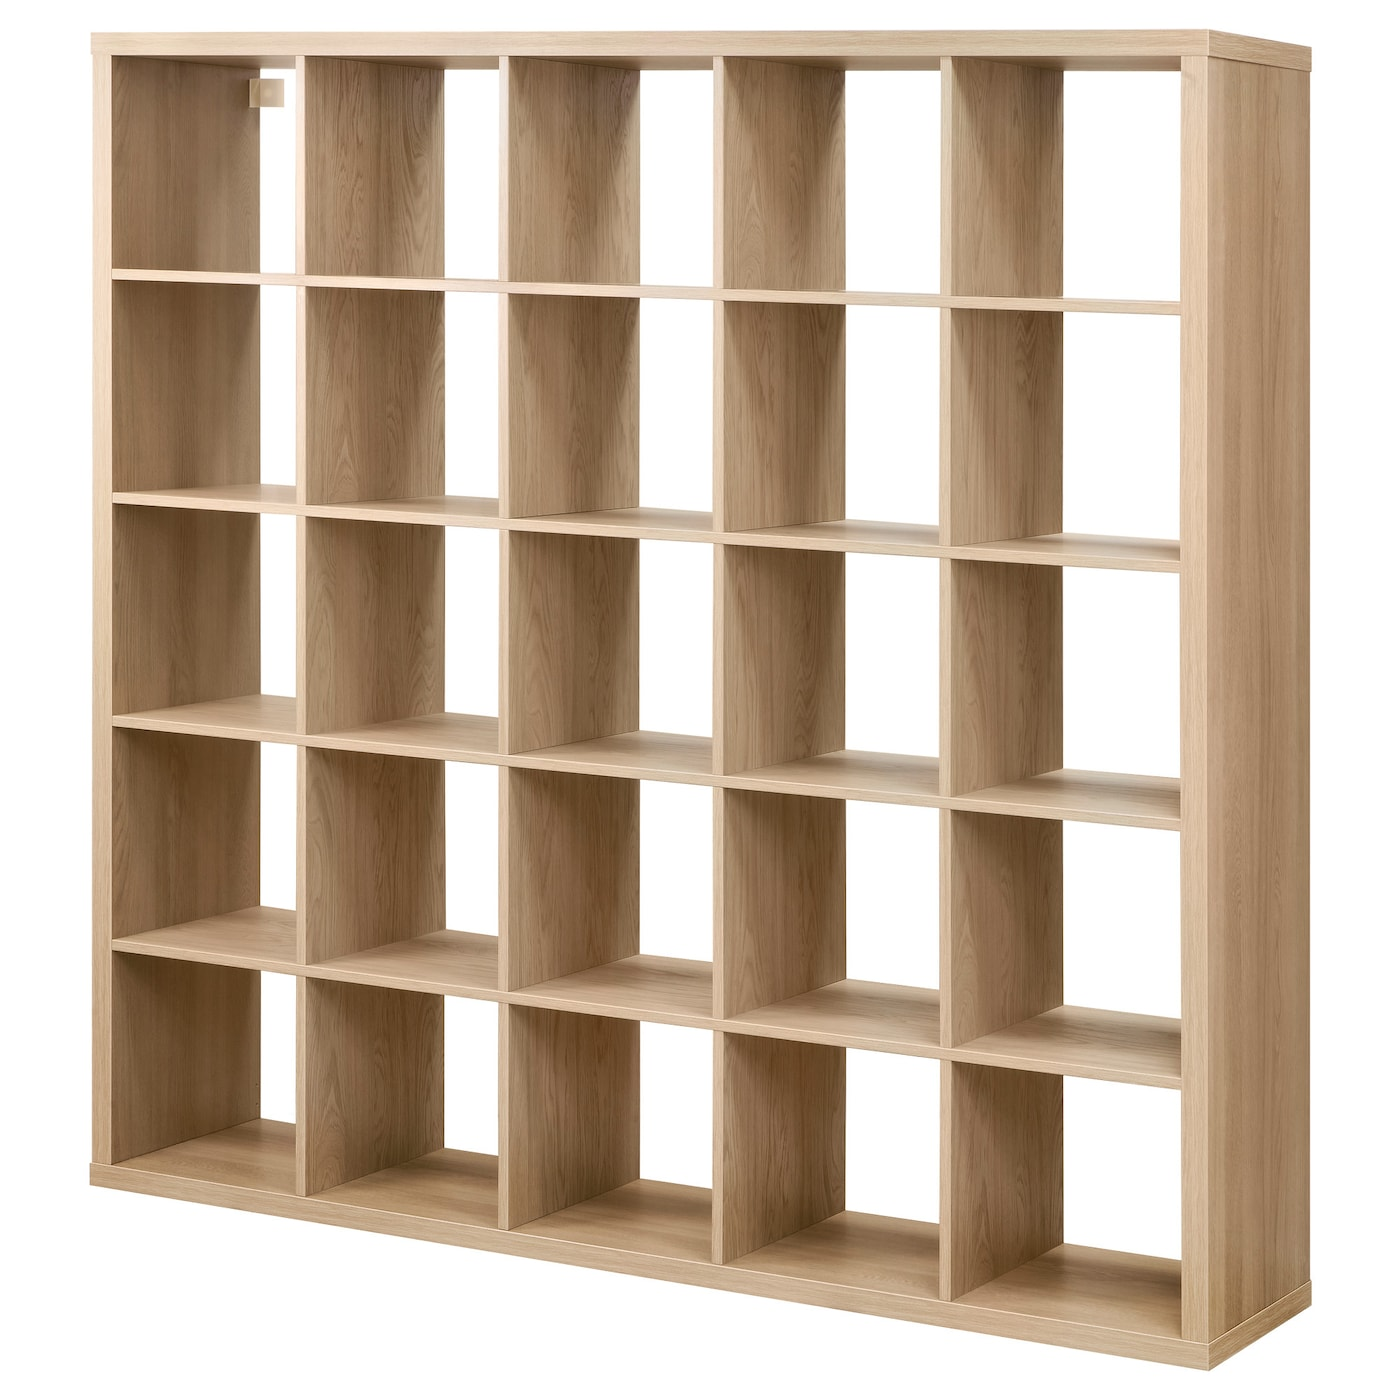 units duty shelf heavy hoops shelving retaining for